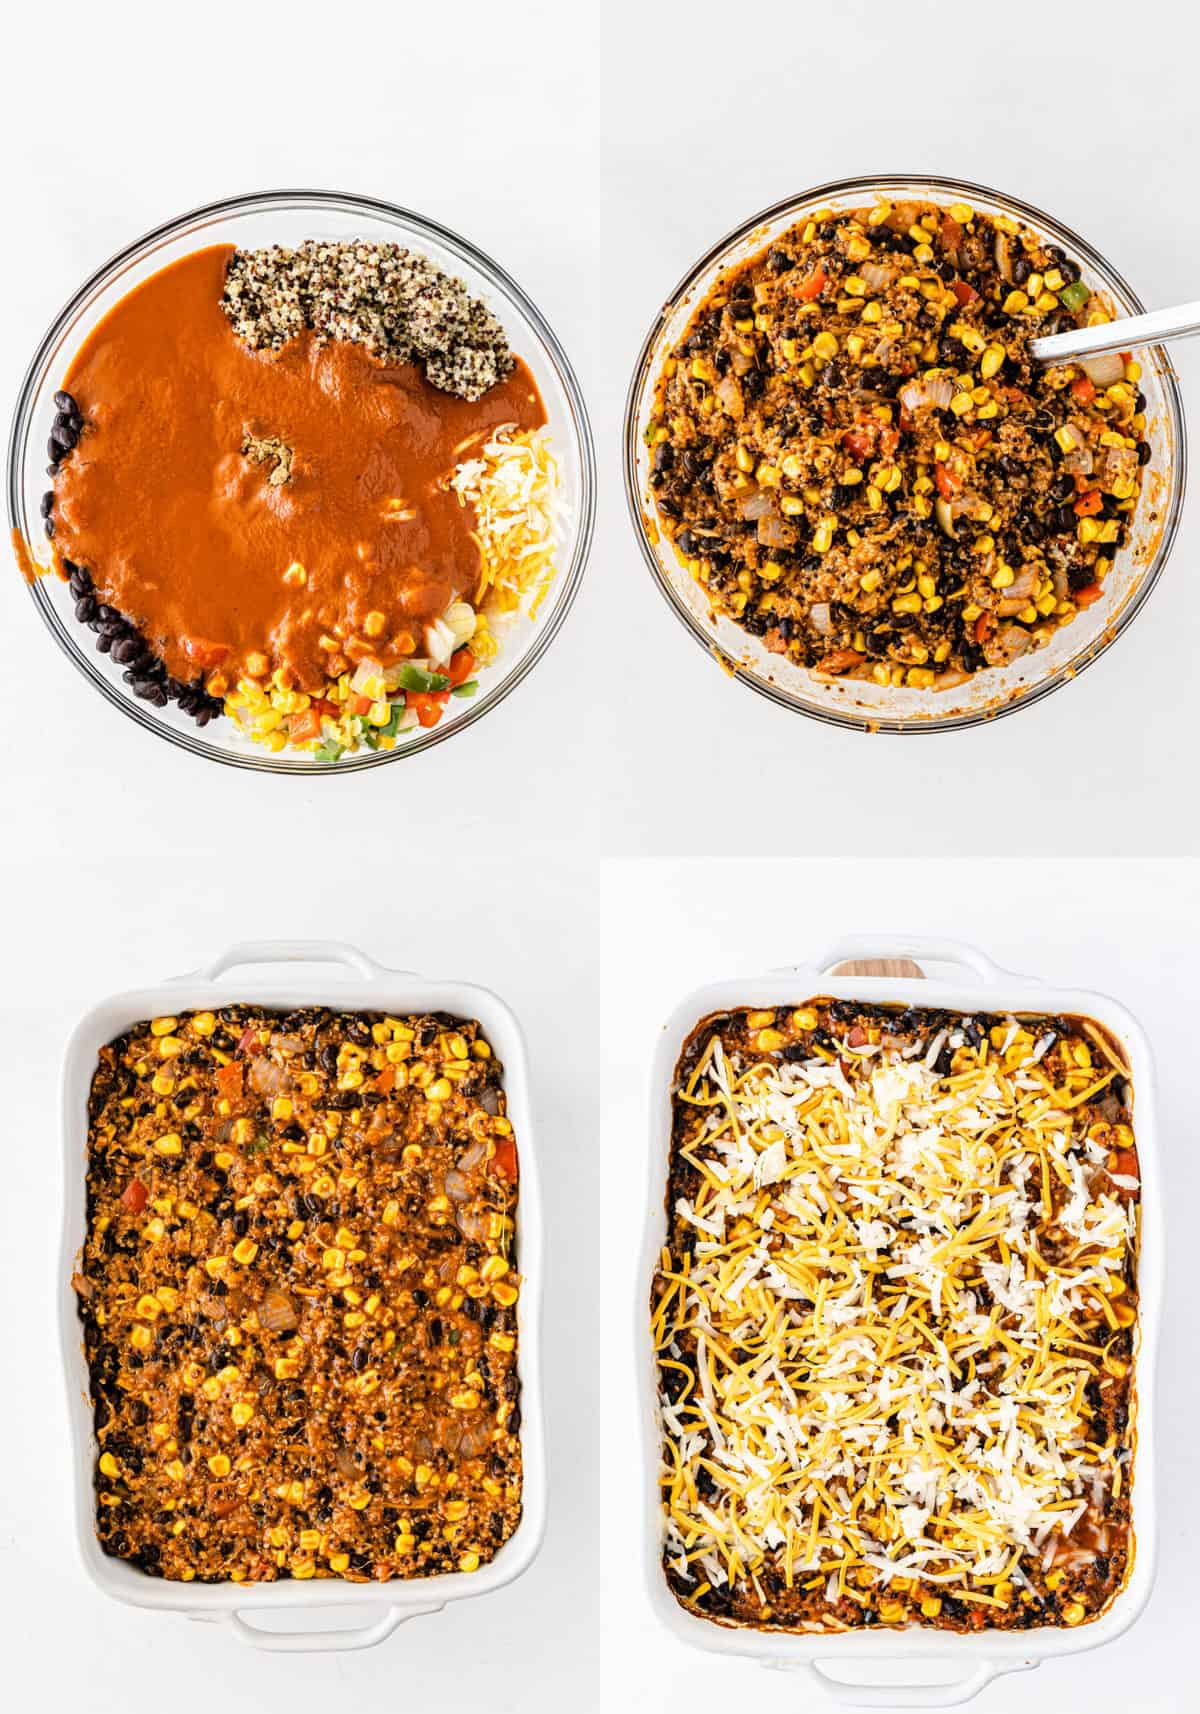 image collage showing the enchilada casserole ingredients, mixed together, in a casserole dish, then topped with mexican cheese